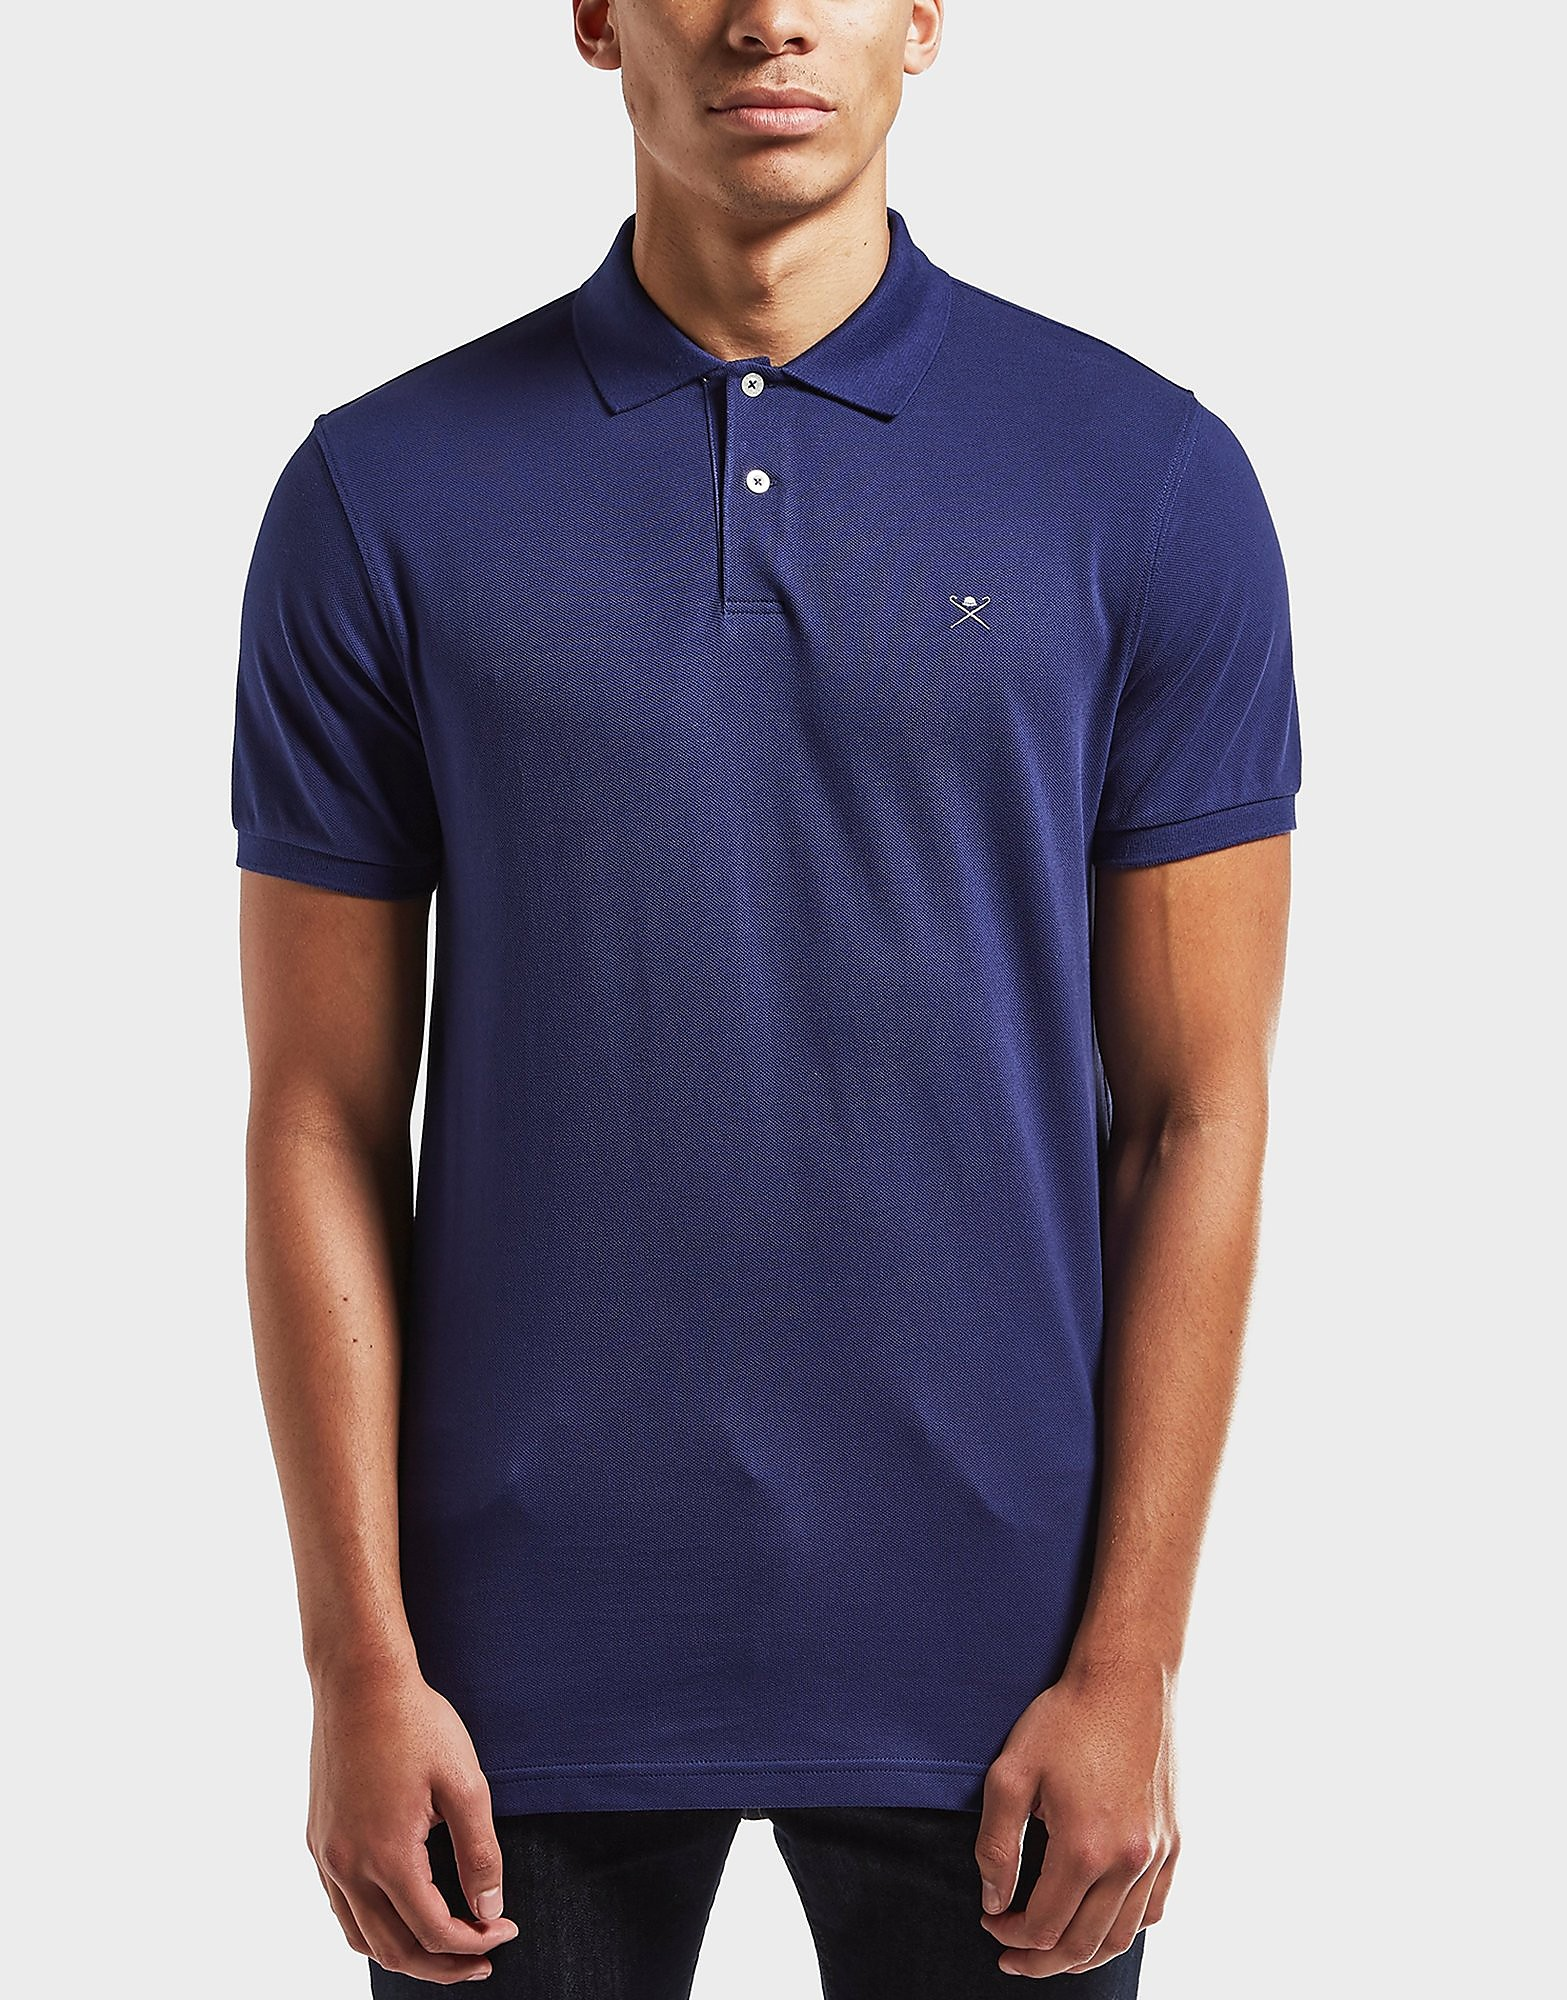 HACKETT Logo Short Sleeve Polo Shirt